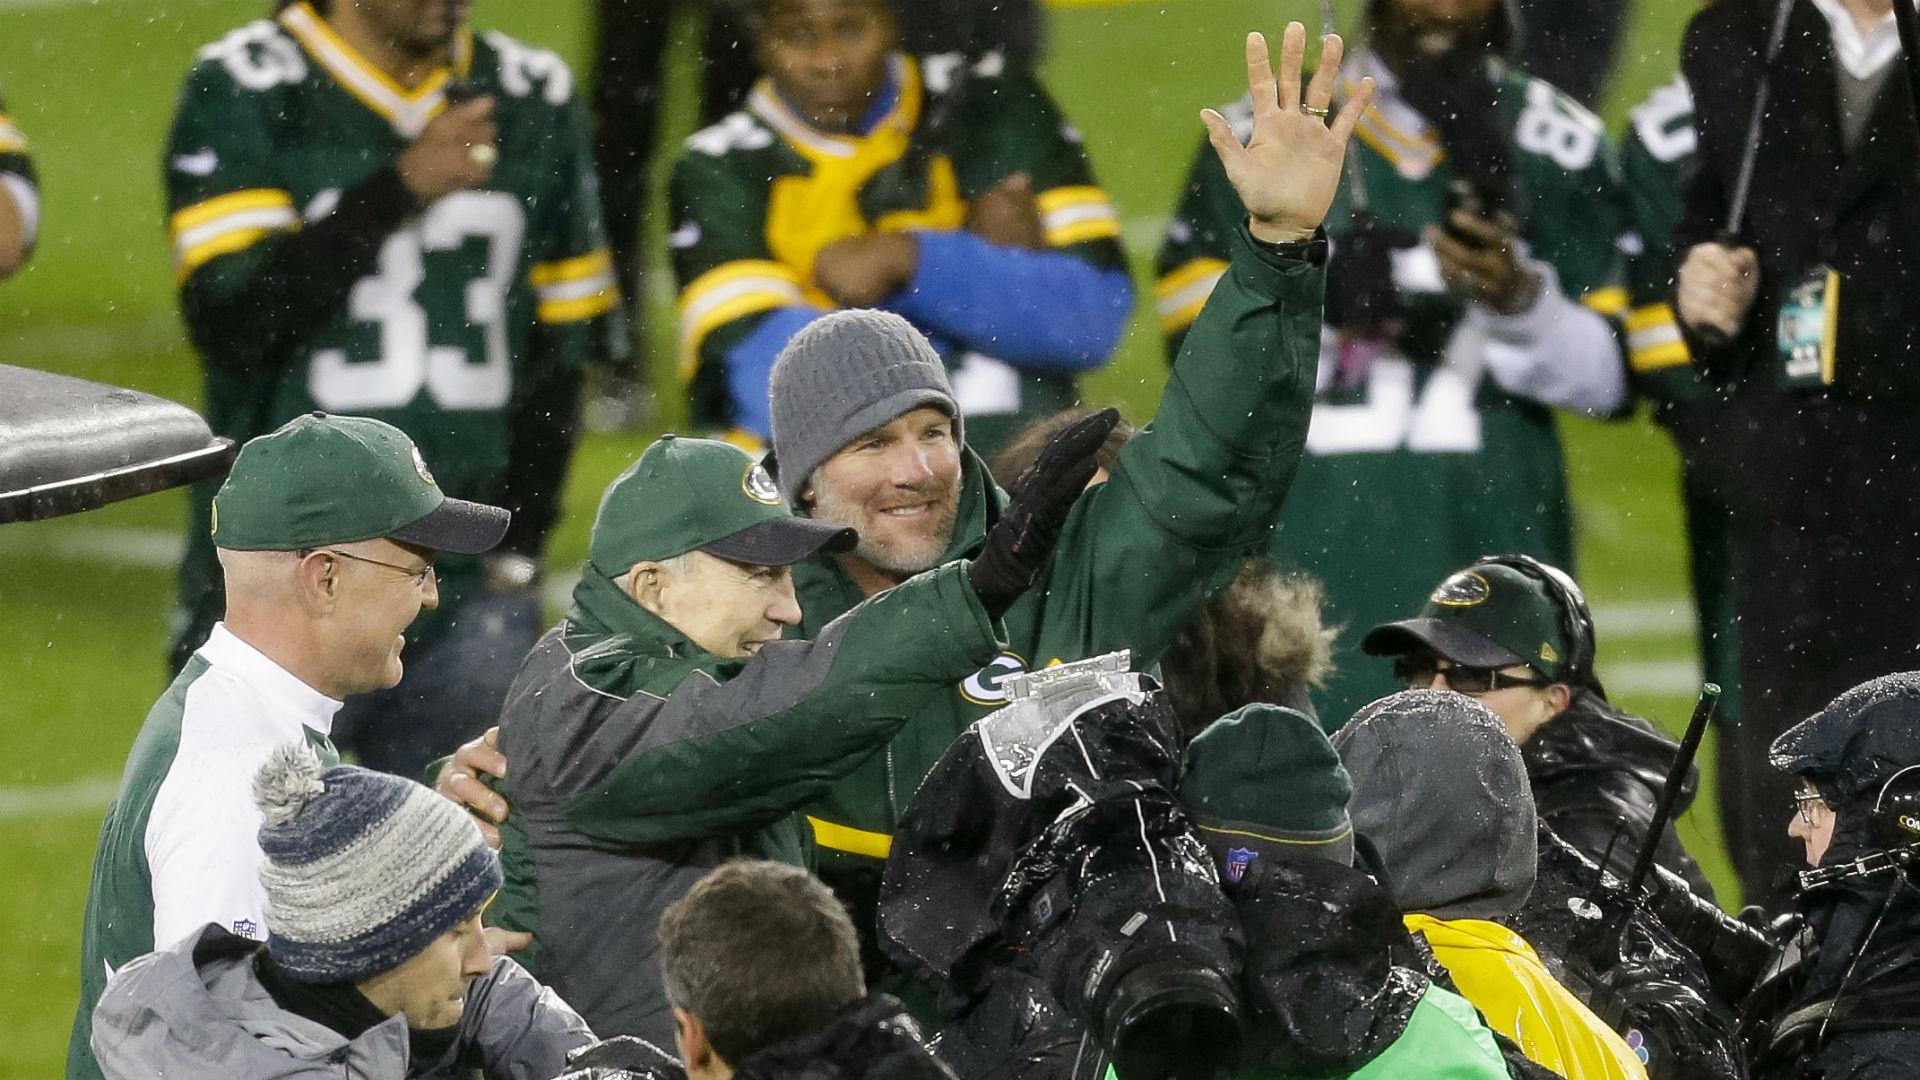 Packers throw Brett Favre 'welcome home' party, retire No. 4 jersey